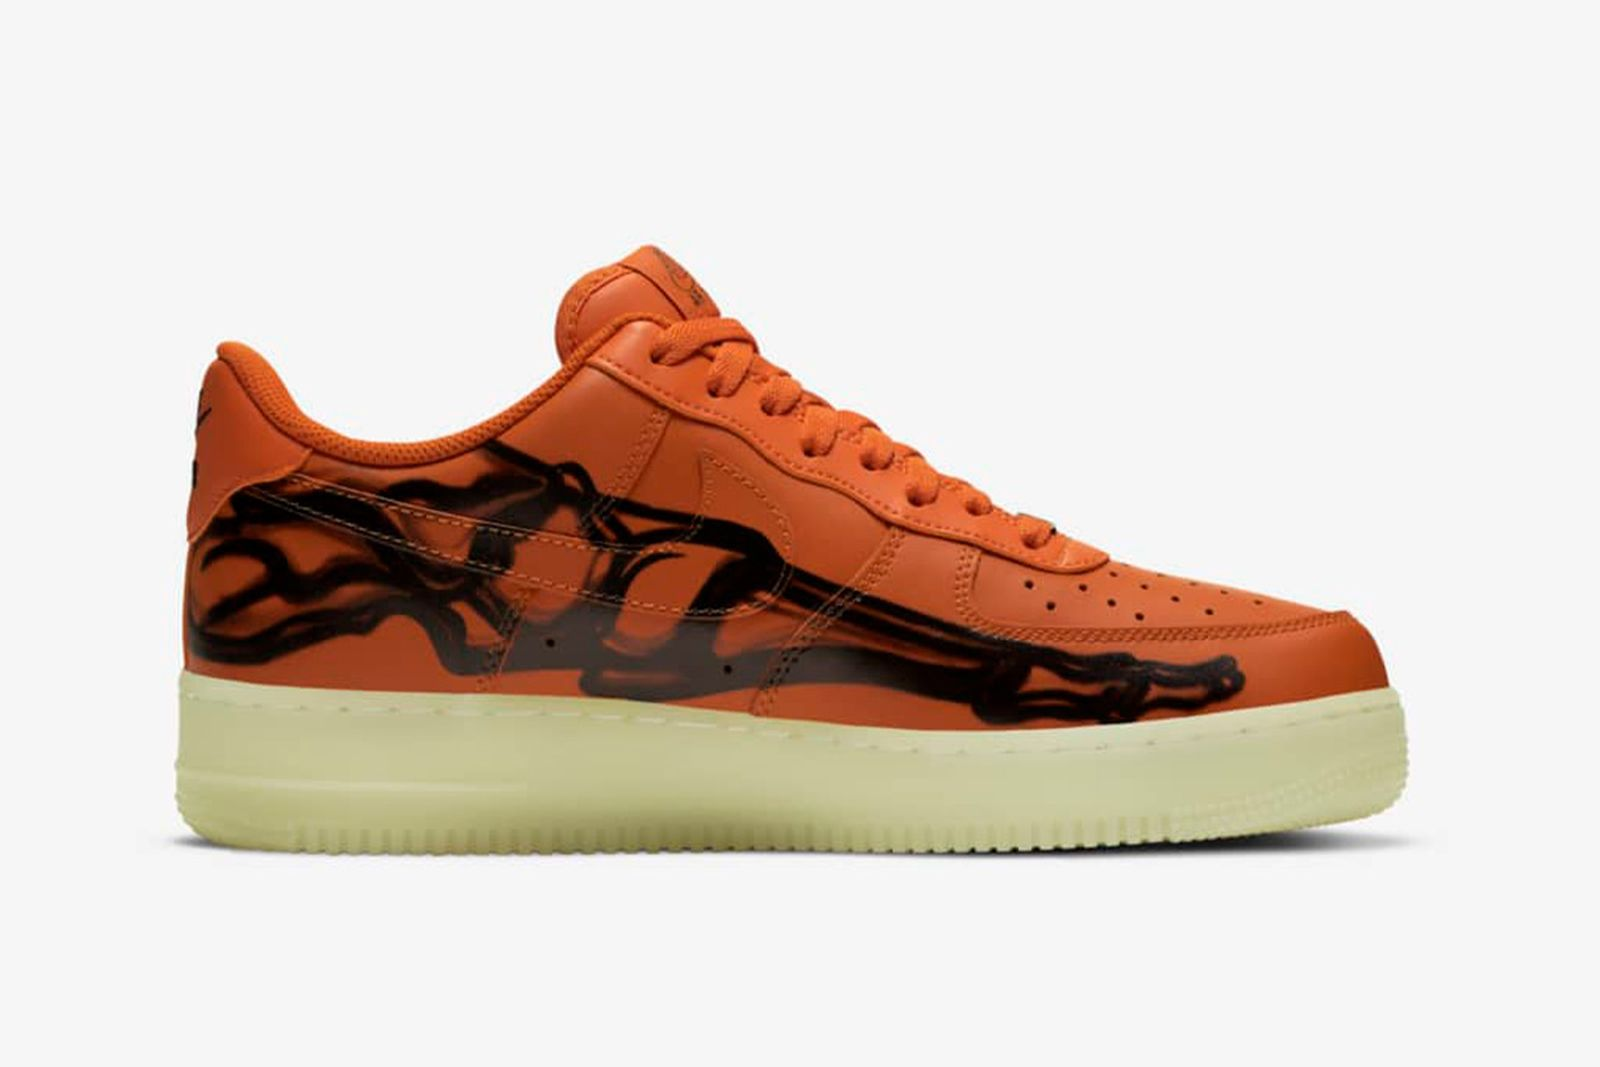 nike-air-force-1-orange-skeleton-release-date-price-03 2